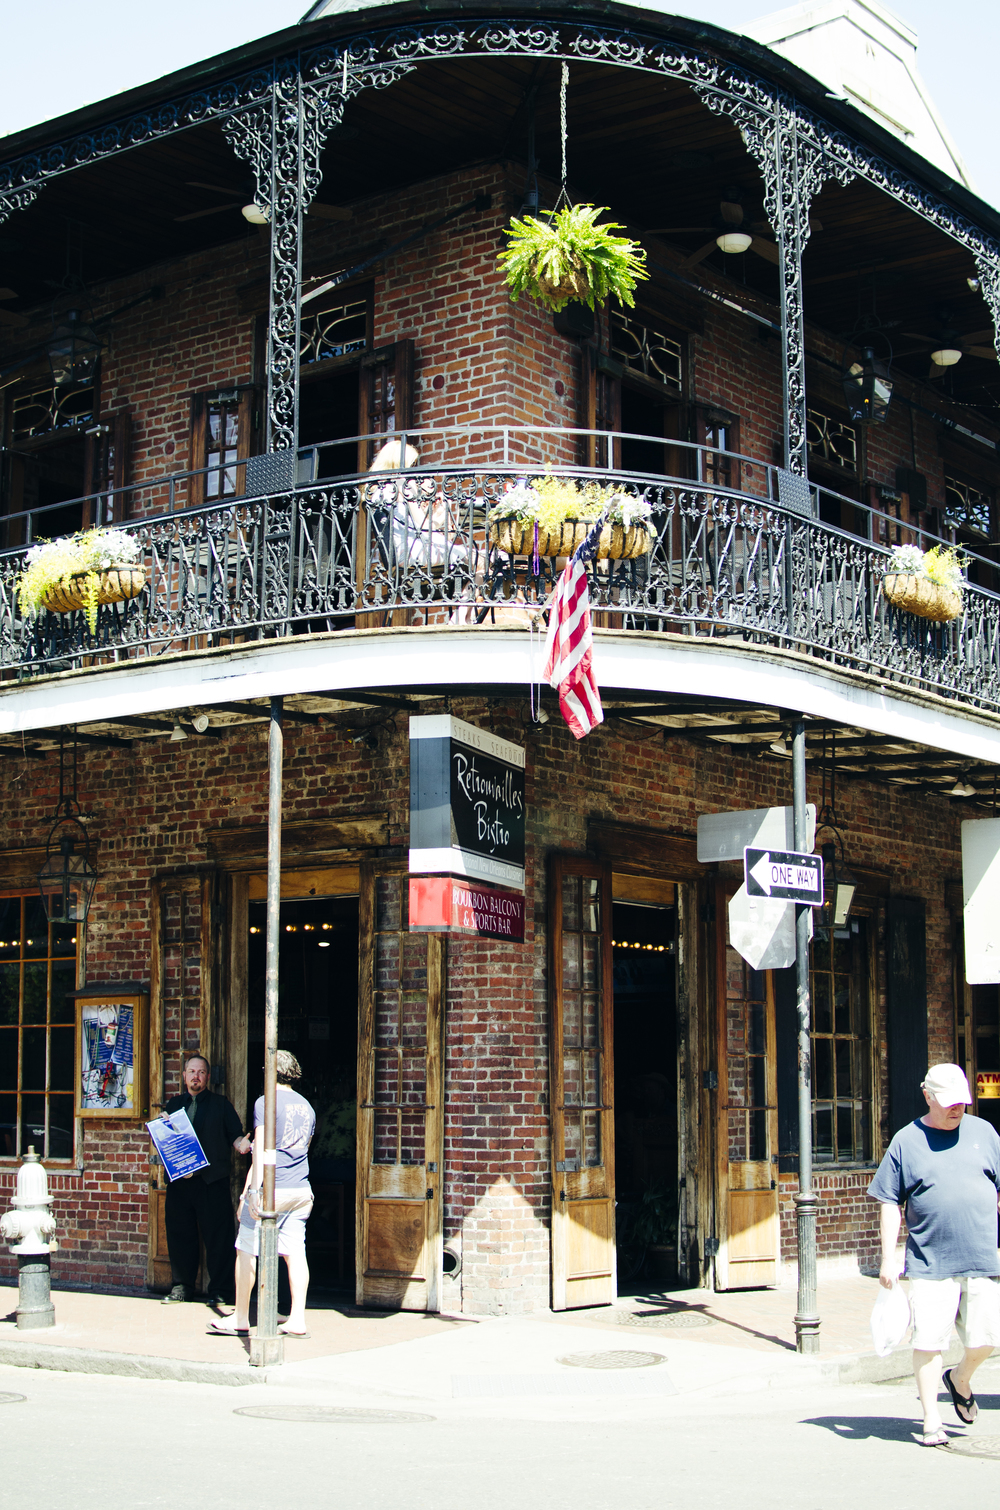 Beautiful patios all over the French Quarter and in other neighborhoods of New Orleans provide you with the perfect place to sip on an iced tea, bloody mary, and enjoy some Al Fresco dining while being able to people watch.